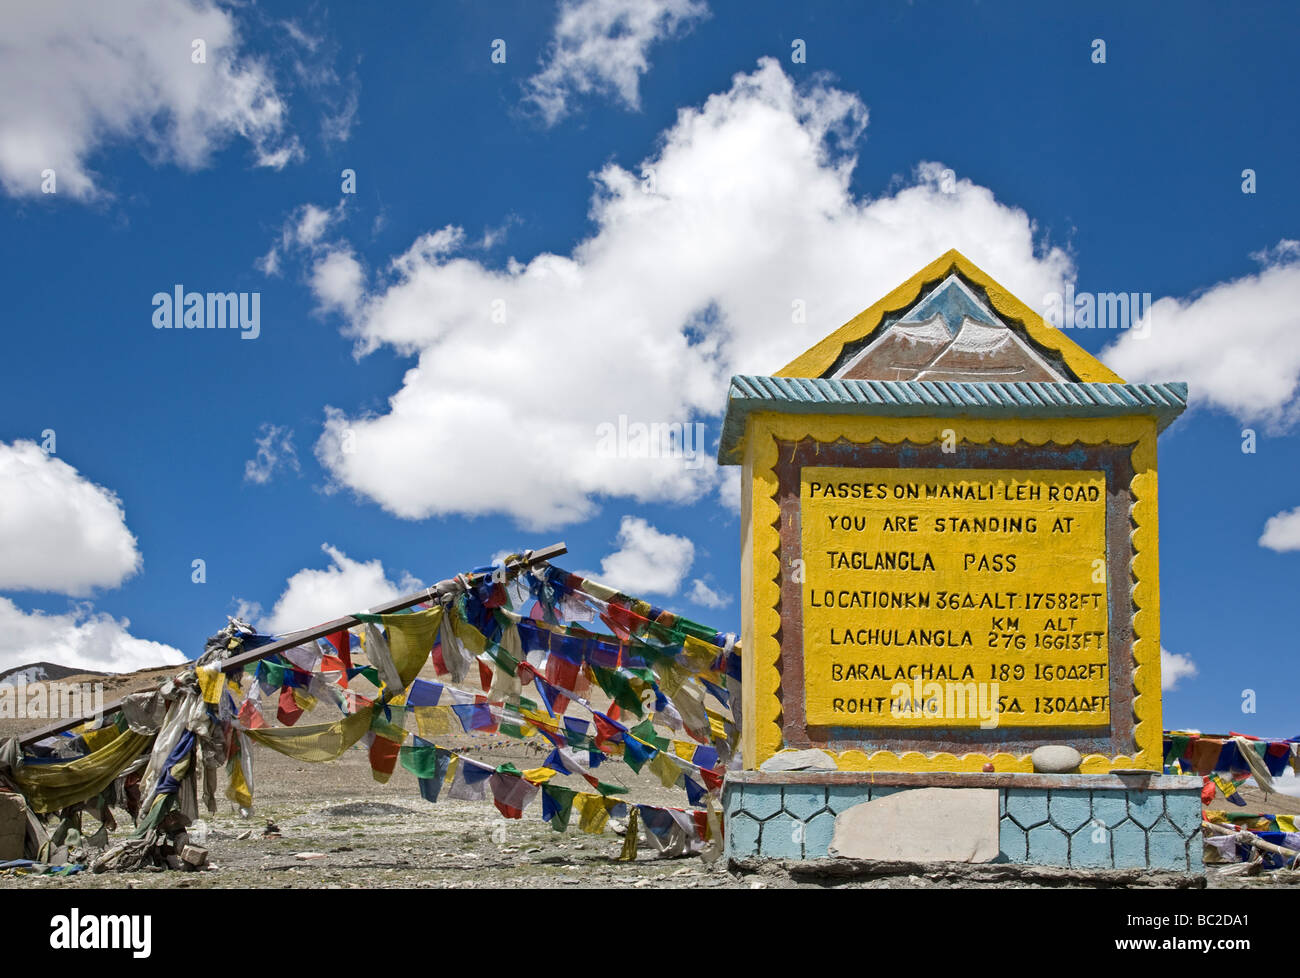 Road sign indiacting the altitude of the high passes on the Manali-Leh road. Taglang La pass (17582 ft). Ladakh. - Stock Image